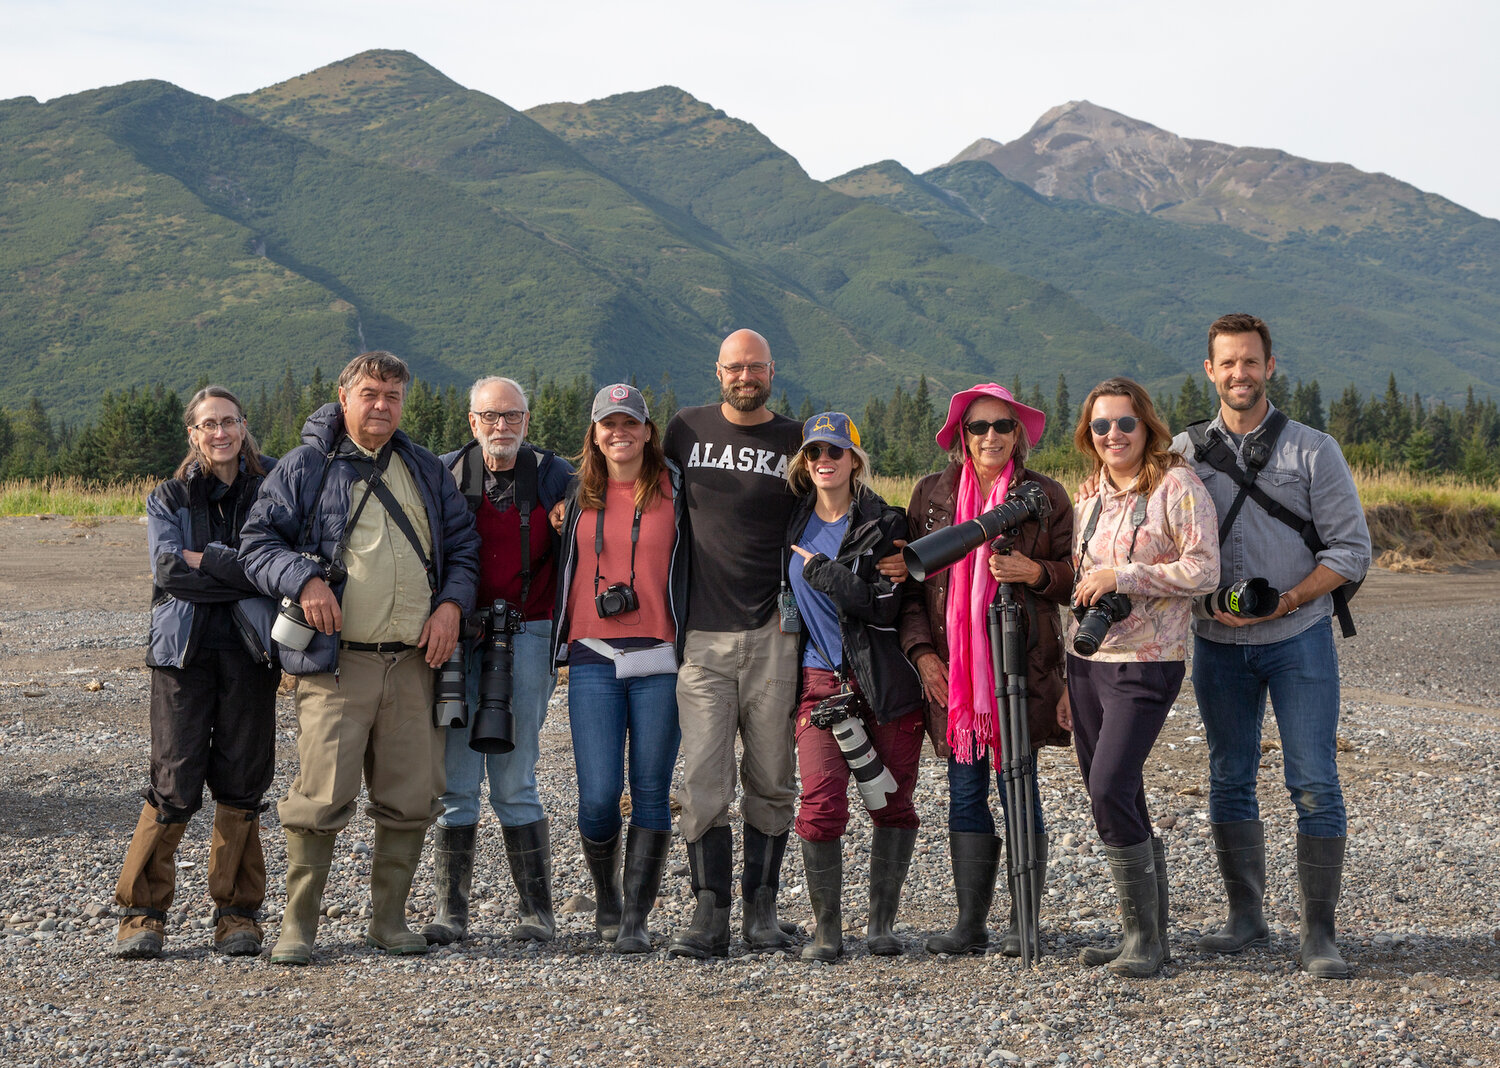 Marisa Marulli Photography Expedition Photo Workshops Photo Tours Alaska small.jpeg